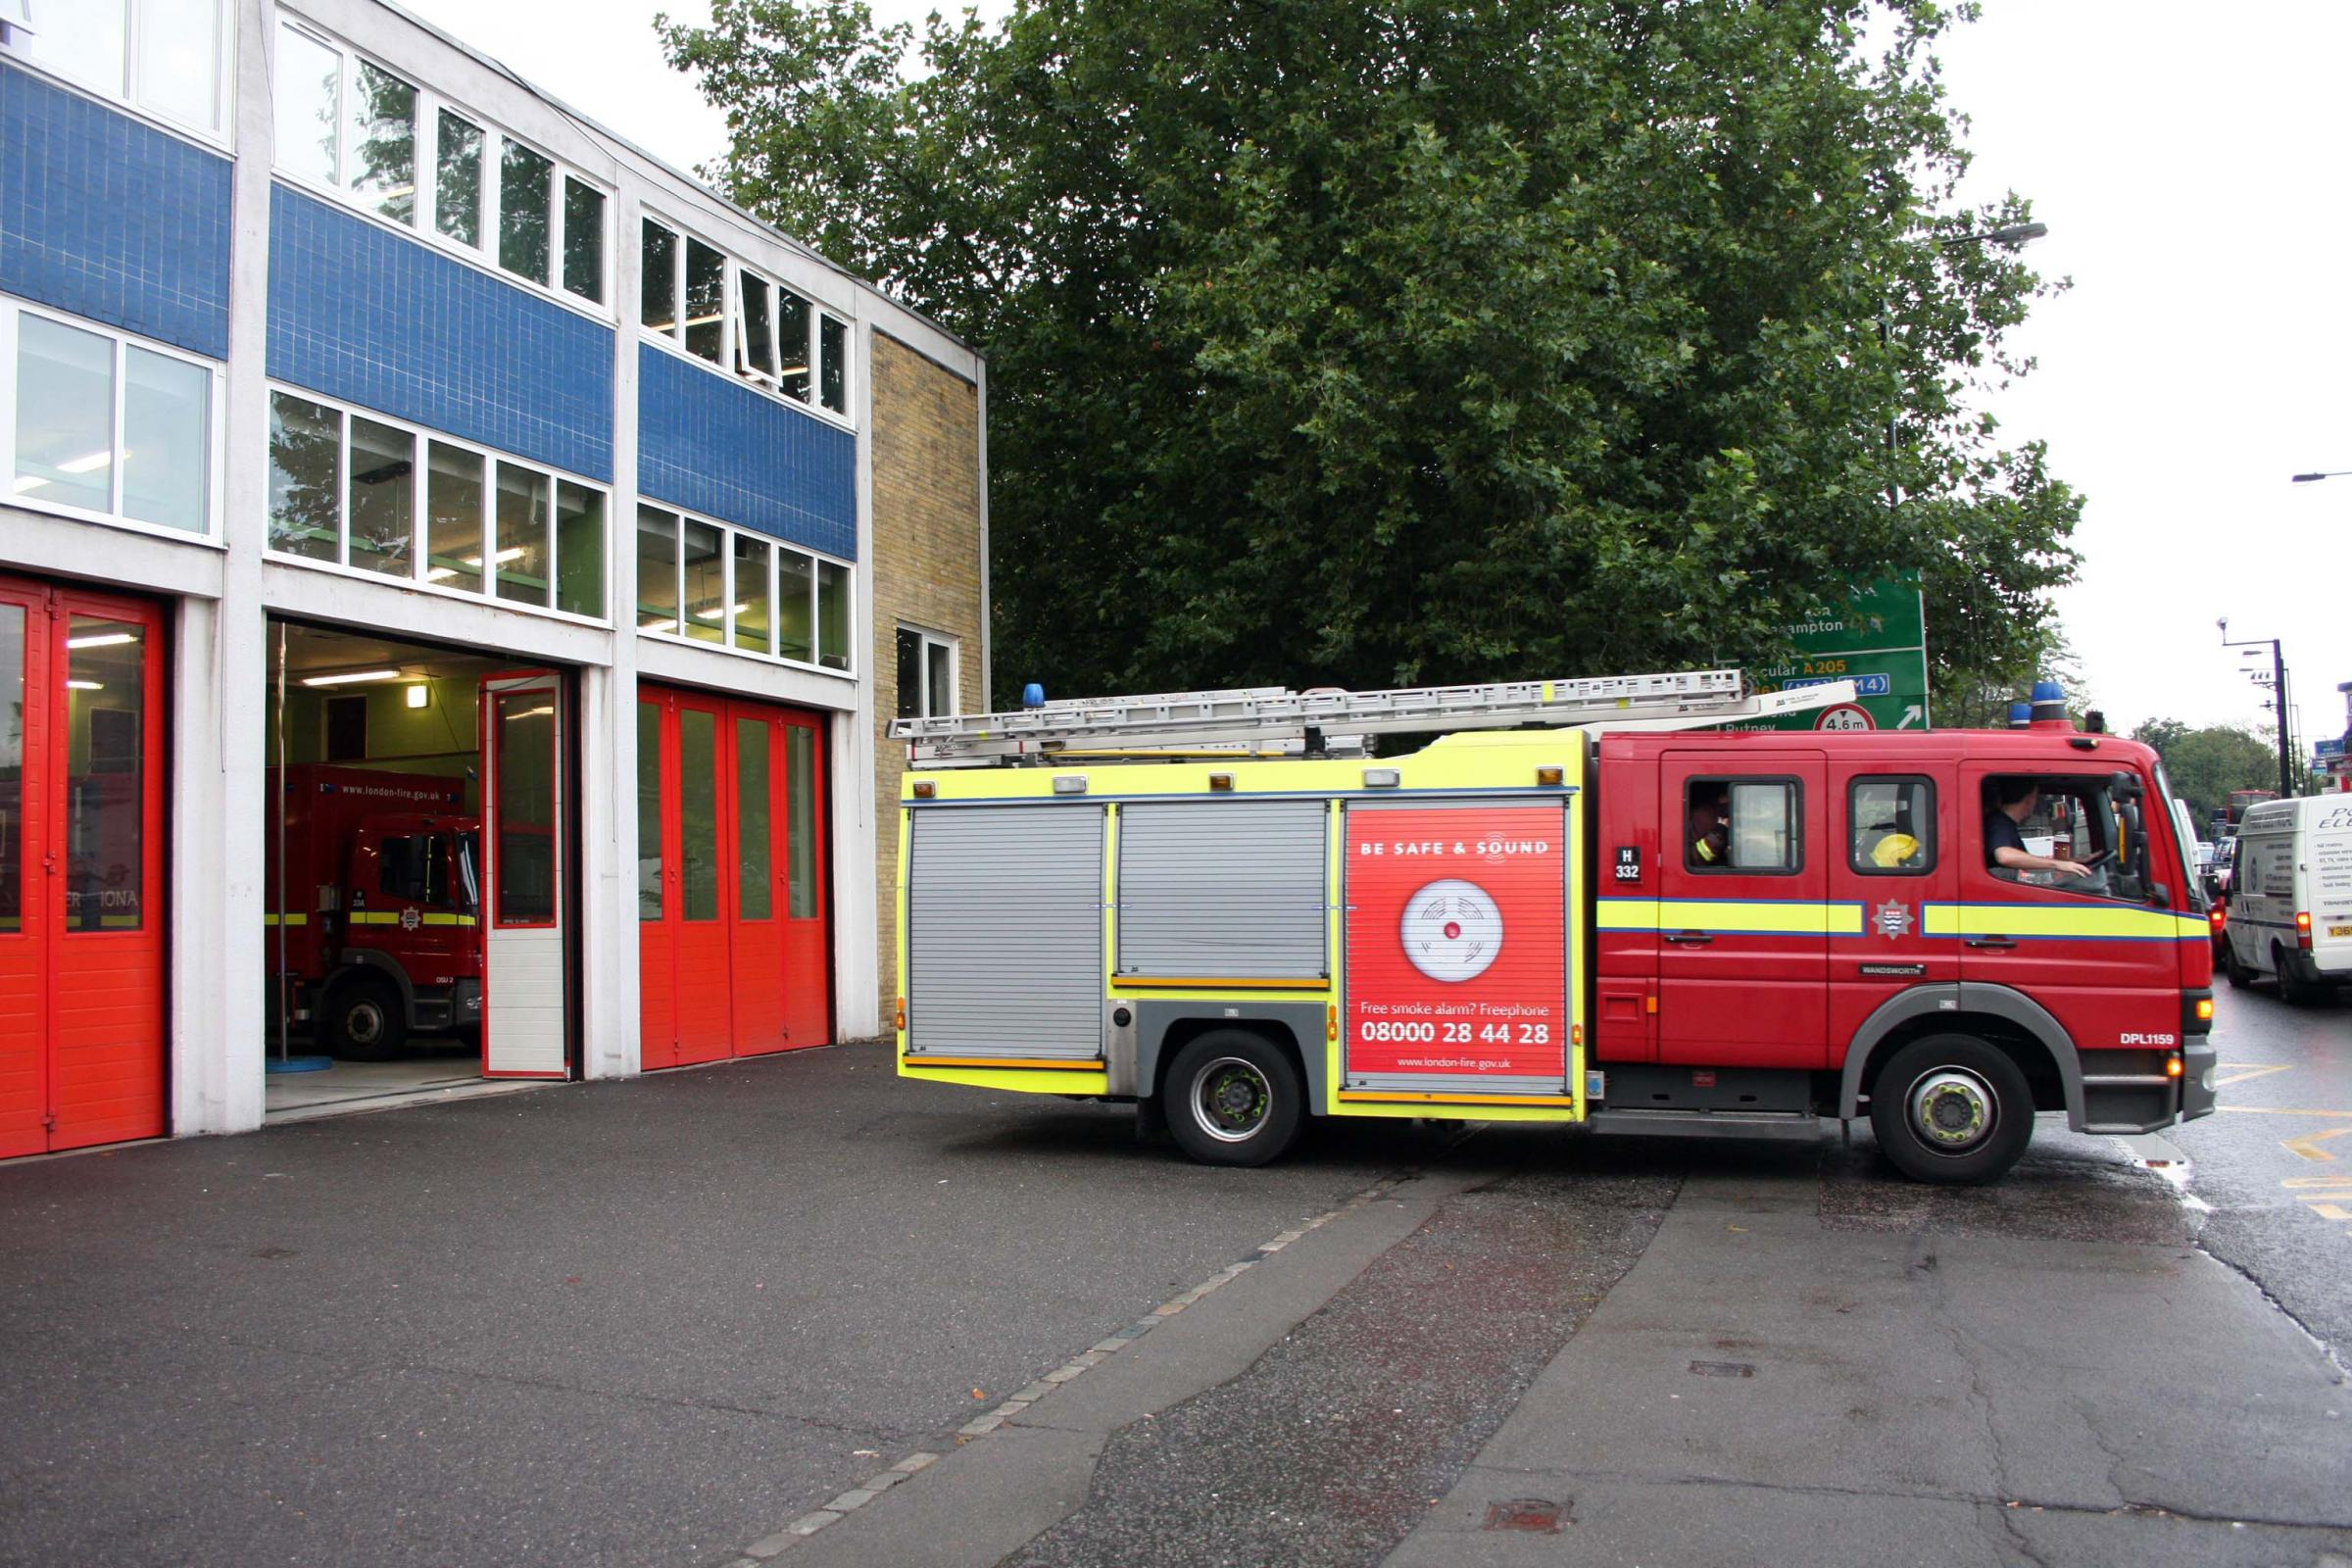 Wandsworth fire station could face permanent reduction to one engine as response times rise